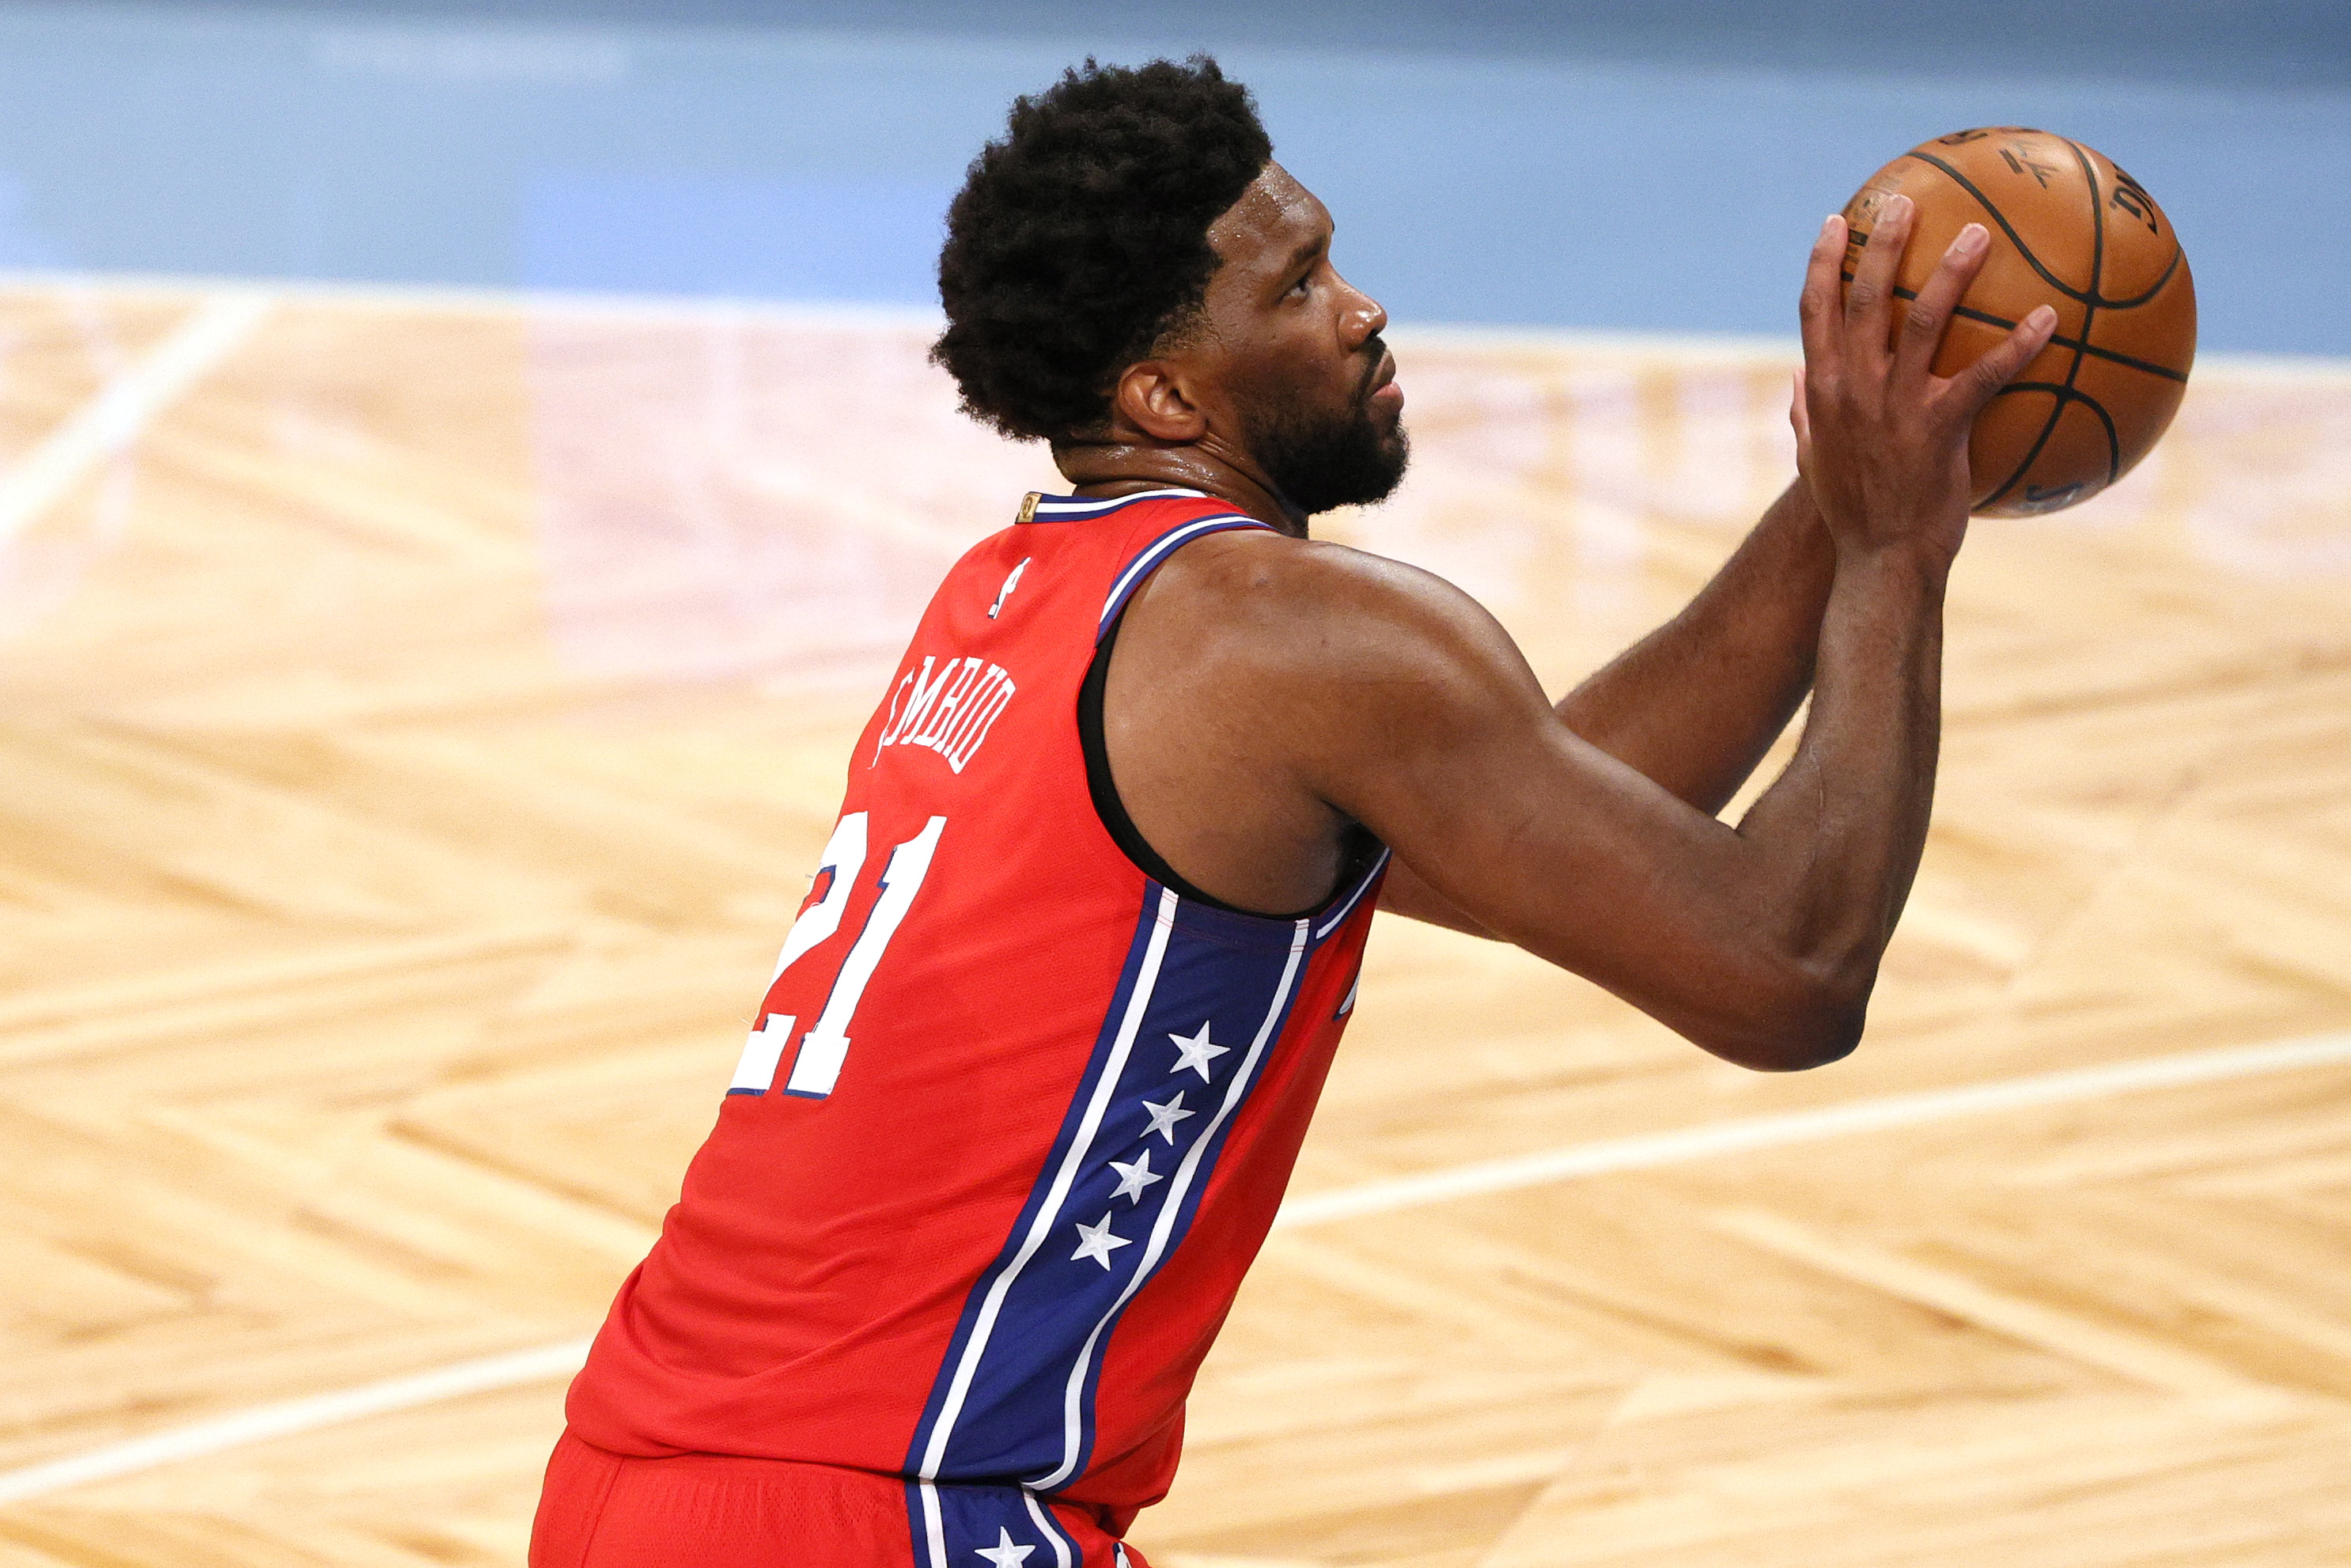 Joel Embiid Reacts to NBA's Handling of COVID-19